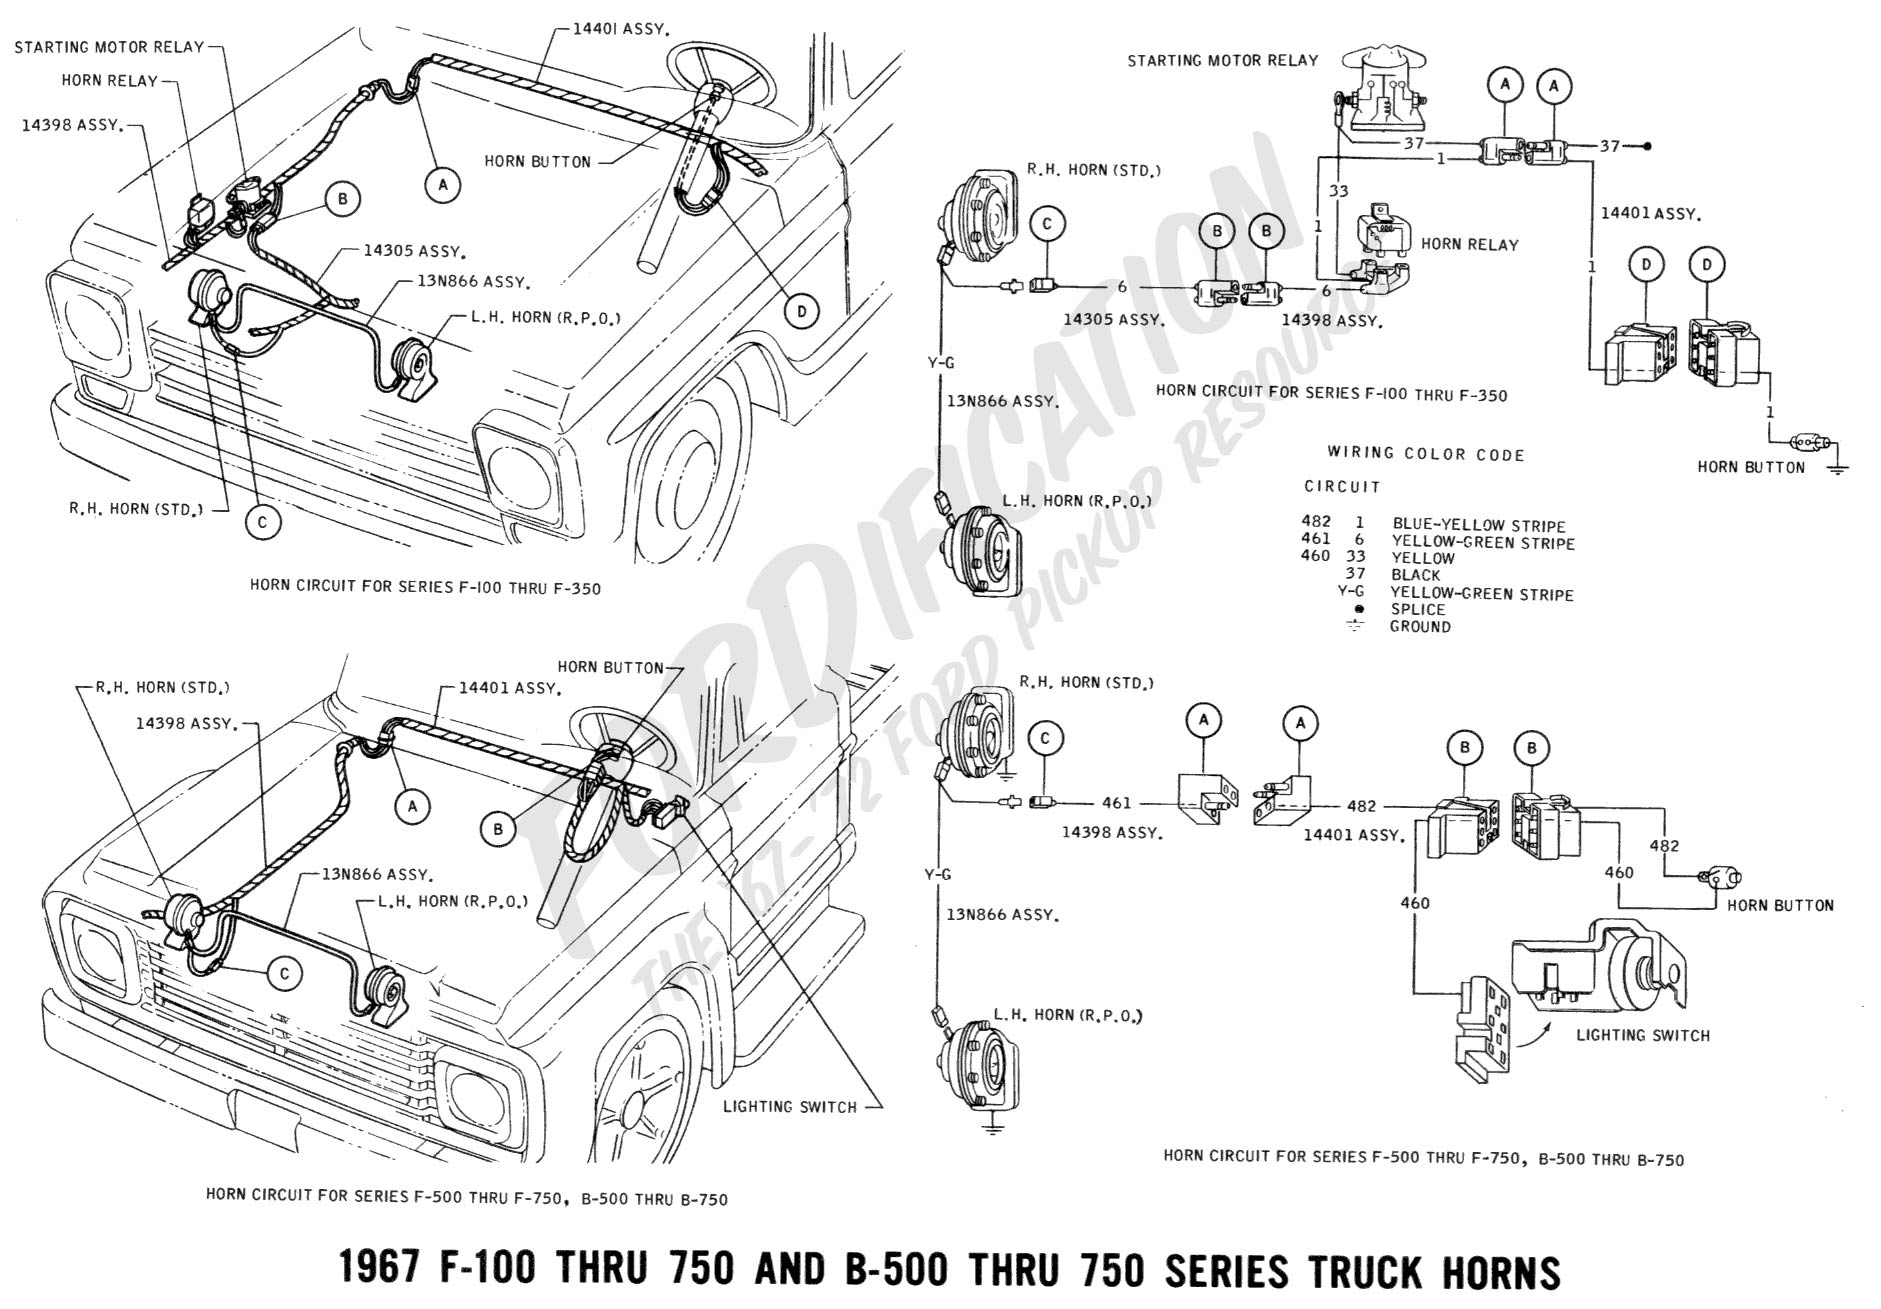 Ford truck technical drawings and schematics section h wiring 1967 f 100 thru f 750 b 500 thru 750 horn cheapraybanclubmaster